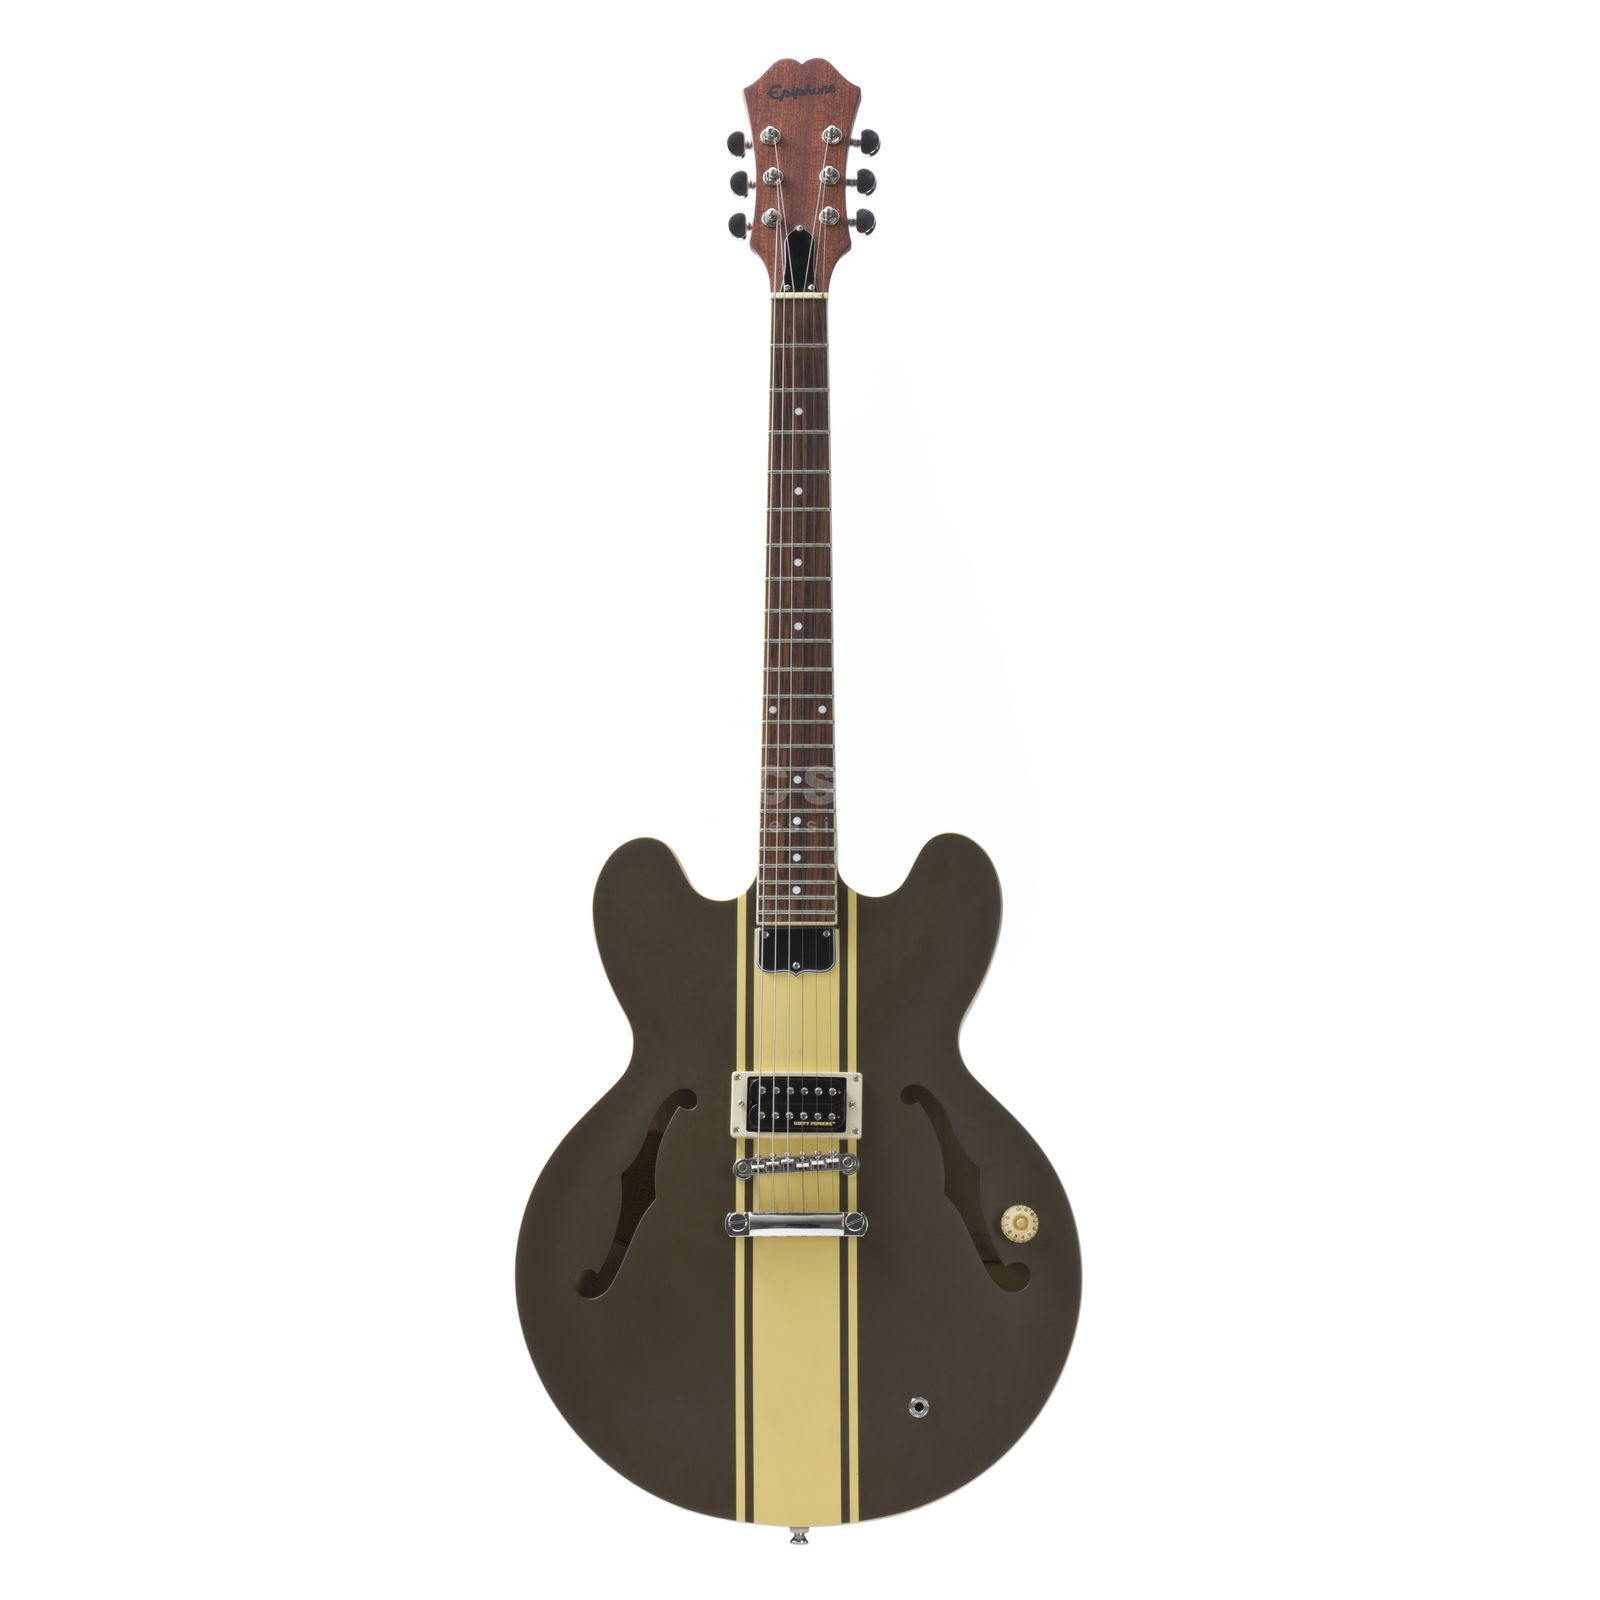 Epiphone Tom DeLonge ES-333 Signature S emi Acoustic Guitar, Brown Produktbillede